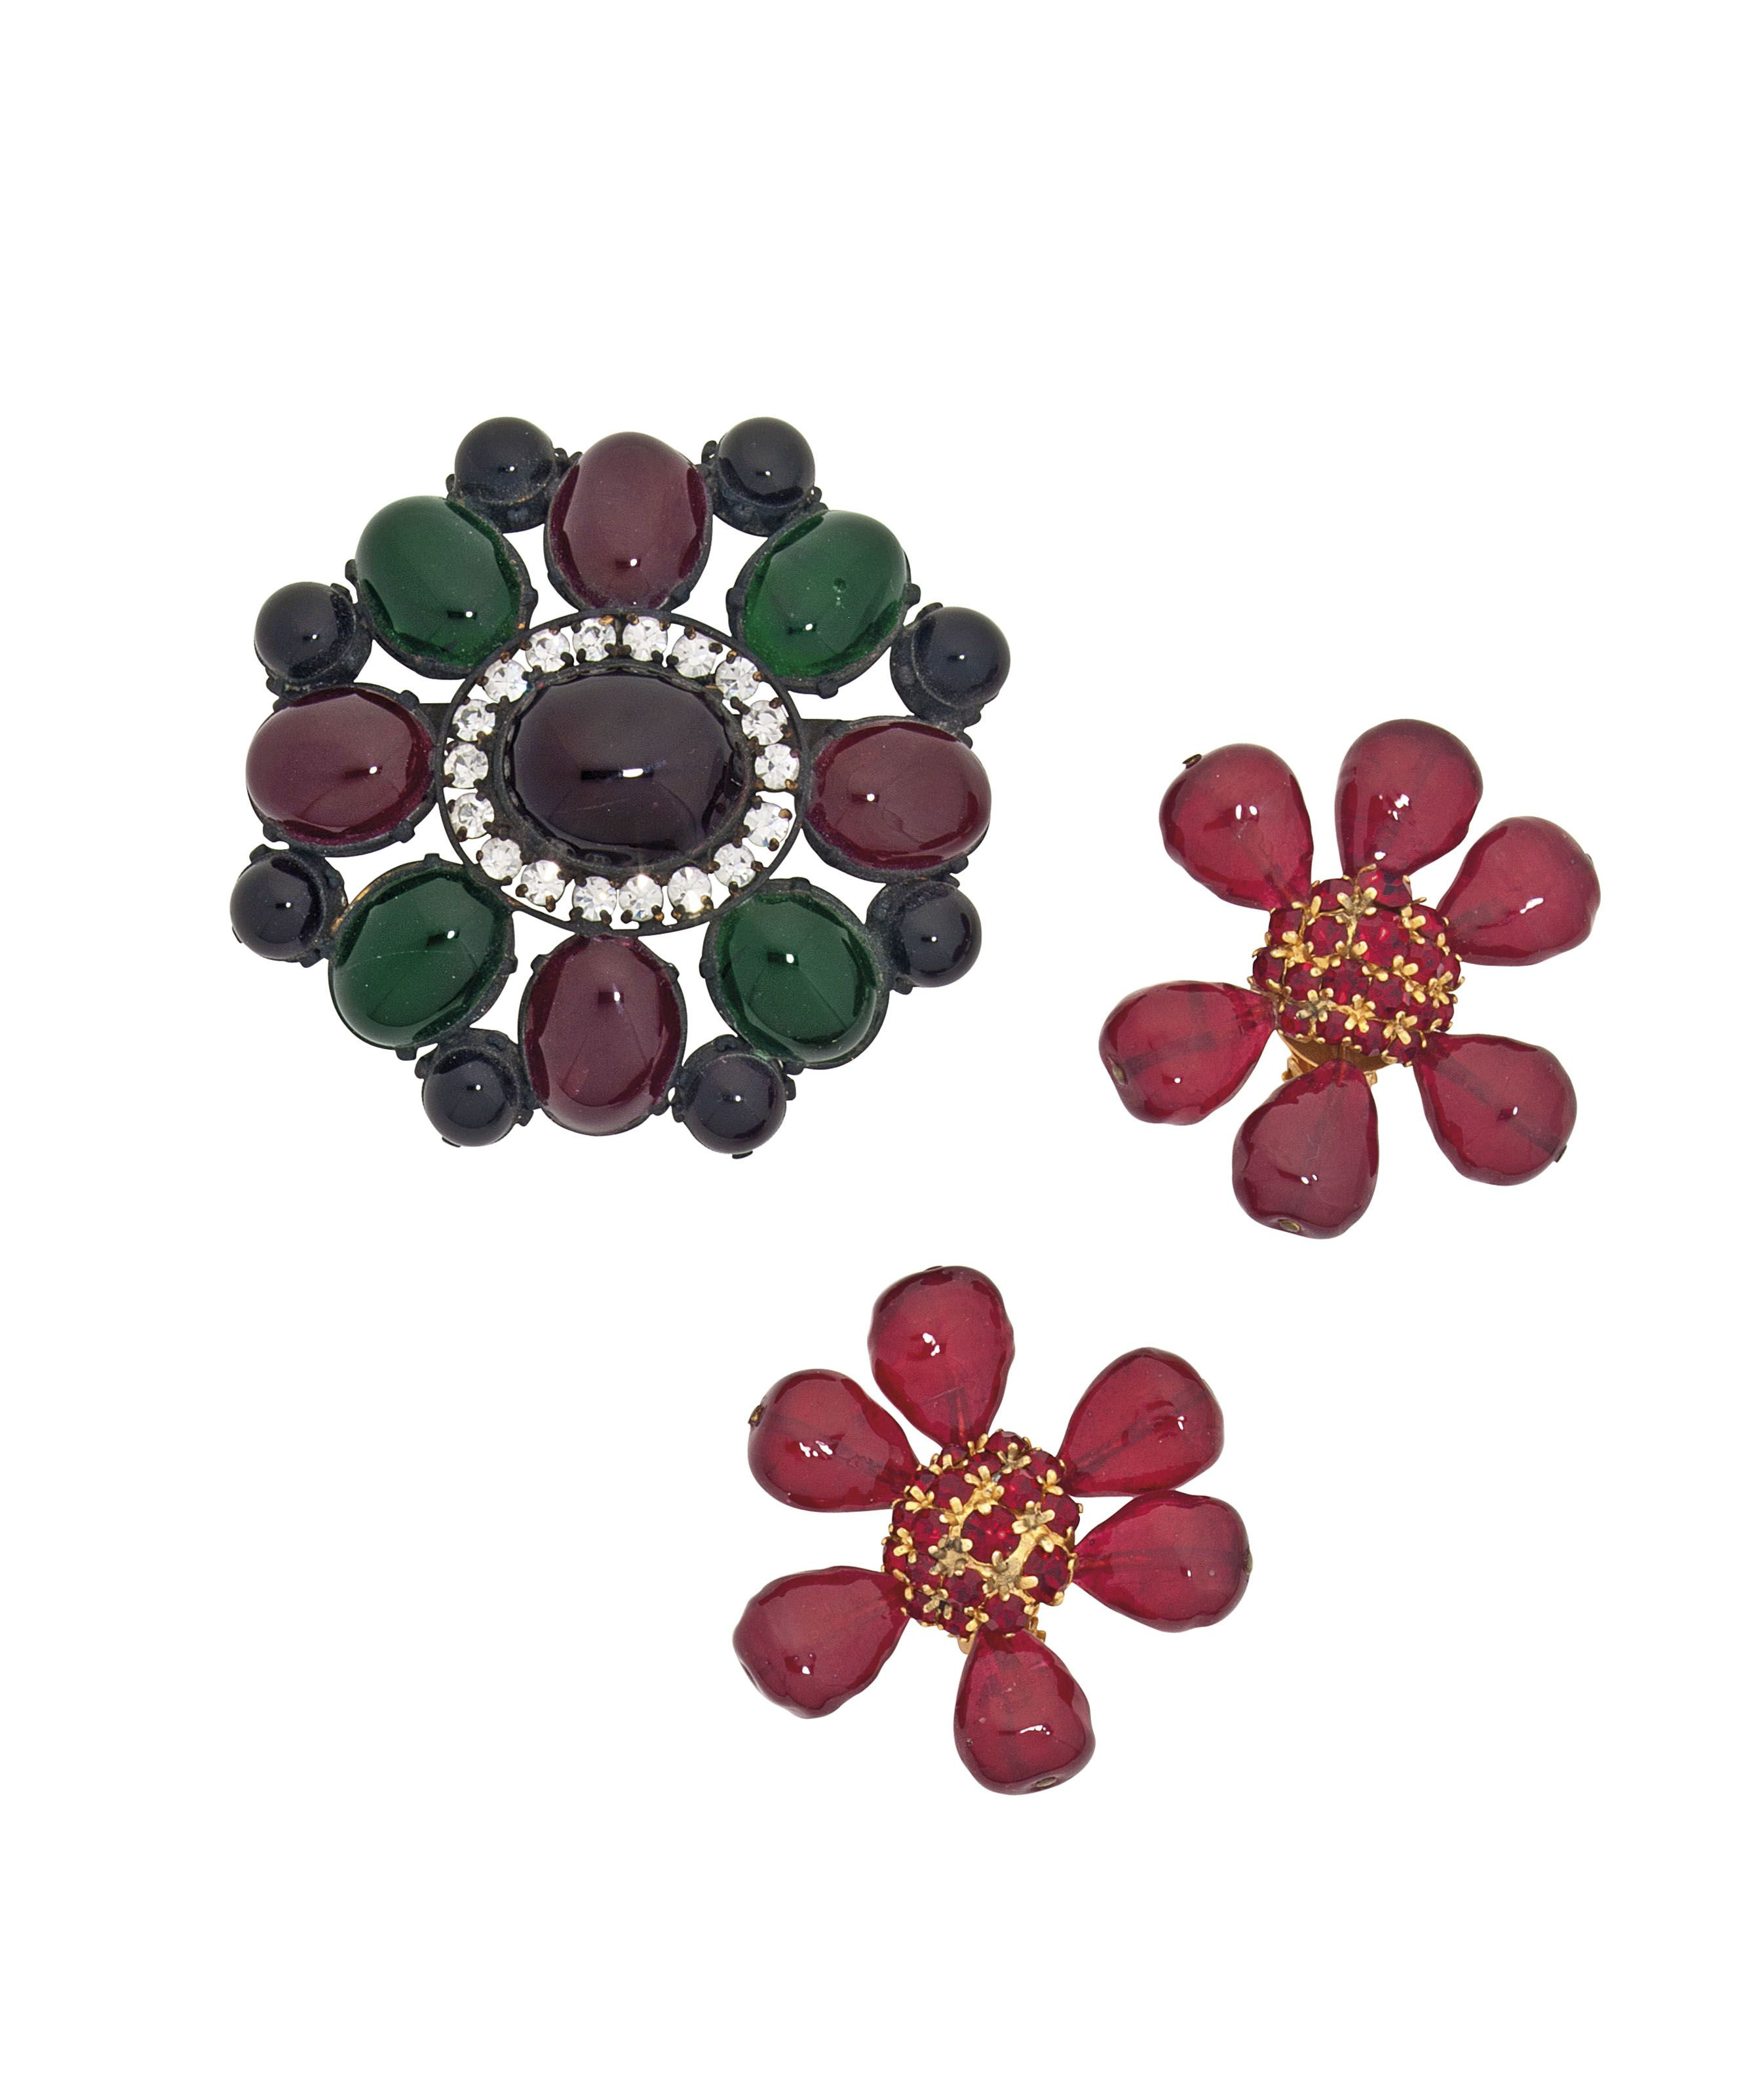 A LARGE, VICTORIAN STYLE BROOCH AND A PAIR OF RED FLORAL EARRINGS  CHANEL, 1970S